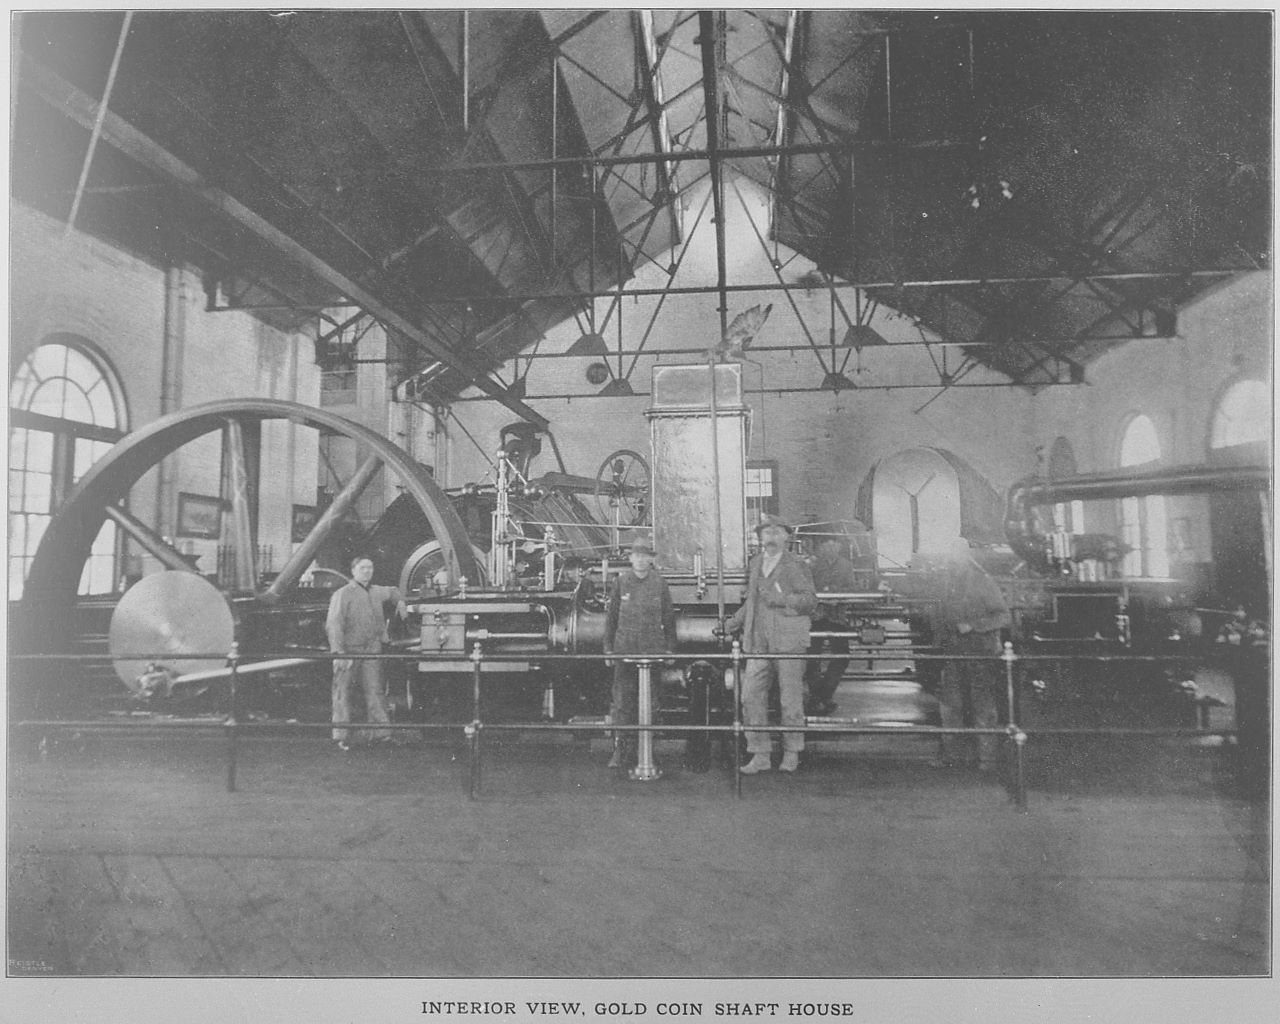 This view from inside the engine house, the west and north long structure from the shaft house, shows part of the massive machinery in use in this mine. We are looking towards south, with the piece just behind the men possible be the Fairbanks-Morse pump the Sanborn 1908 Fire Insurance map is mentioned in this area. Or it might be part of the compressor plant as mention both in Sanborn and in another view, I have from opposite direction talking about the compressor plant in the location of the photographer. Either way, further into the photo, behind the machinery with the flywheel, is the massive hoist of the Gold Coin, with the opening towards the shaft seen as a large opening through the right-hand side of the large flywheel of what I think is a pump.